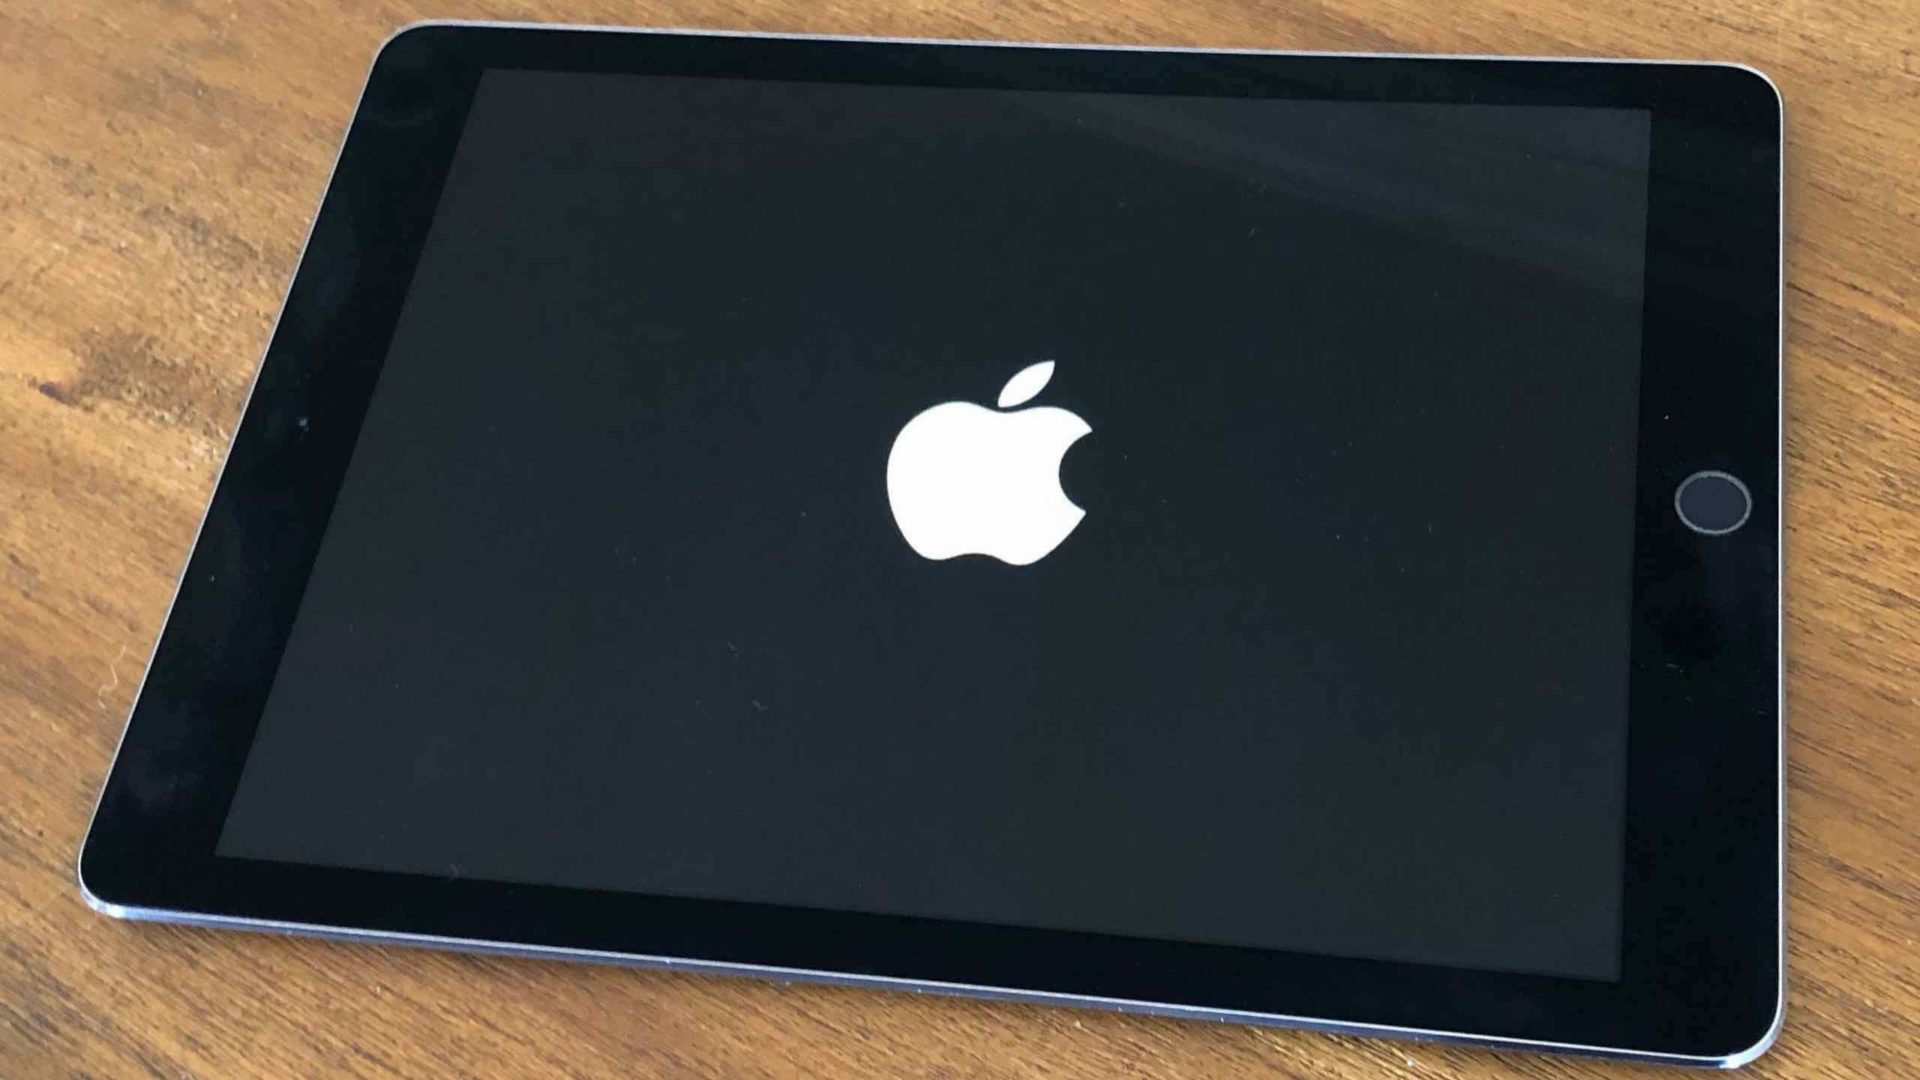 iPad Stuck On The Apple Logo? Here's The Real Fix!